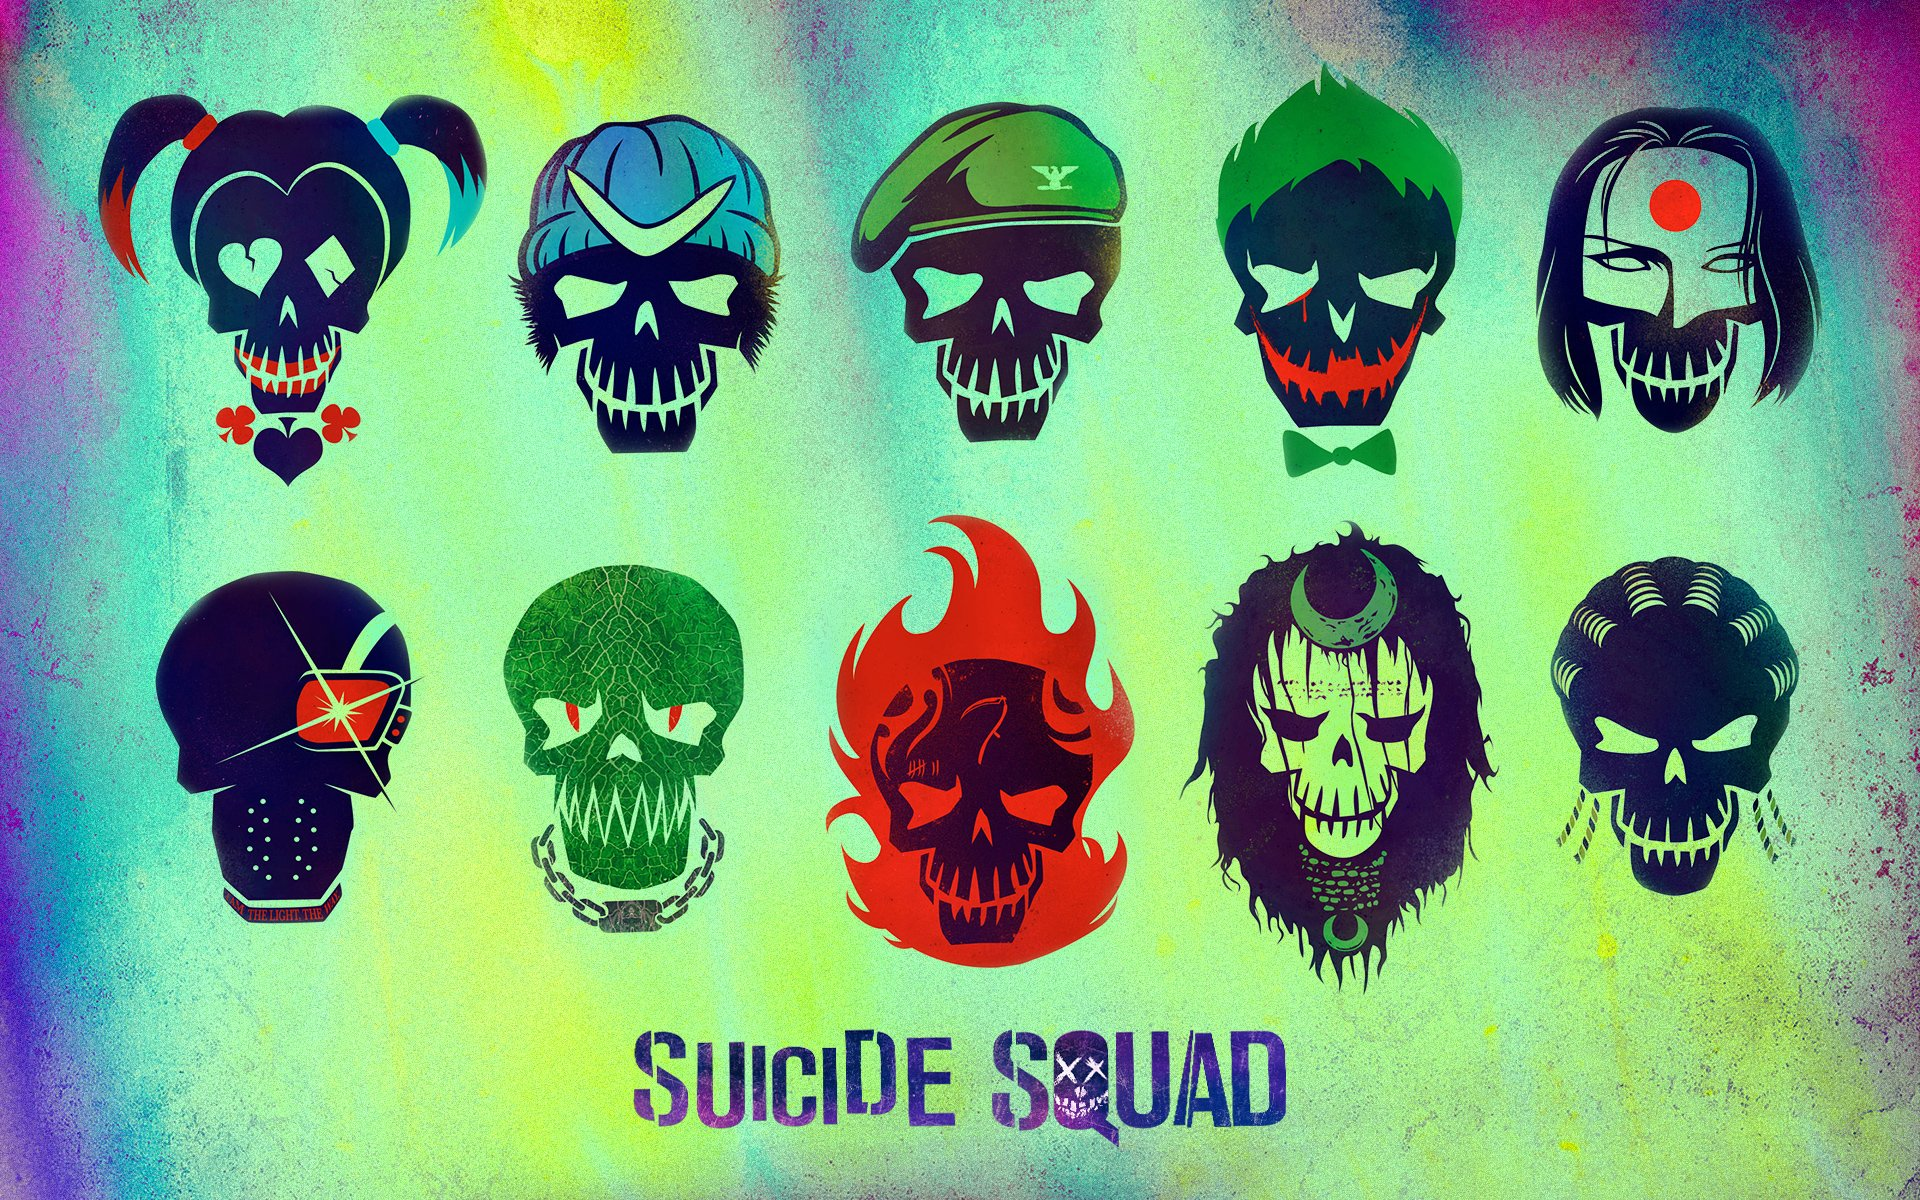 Suicide Squad Wallpapers 4USkYcom 1920x1200